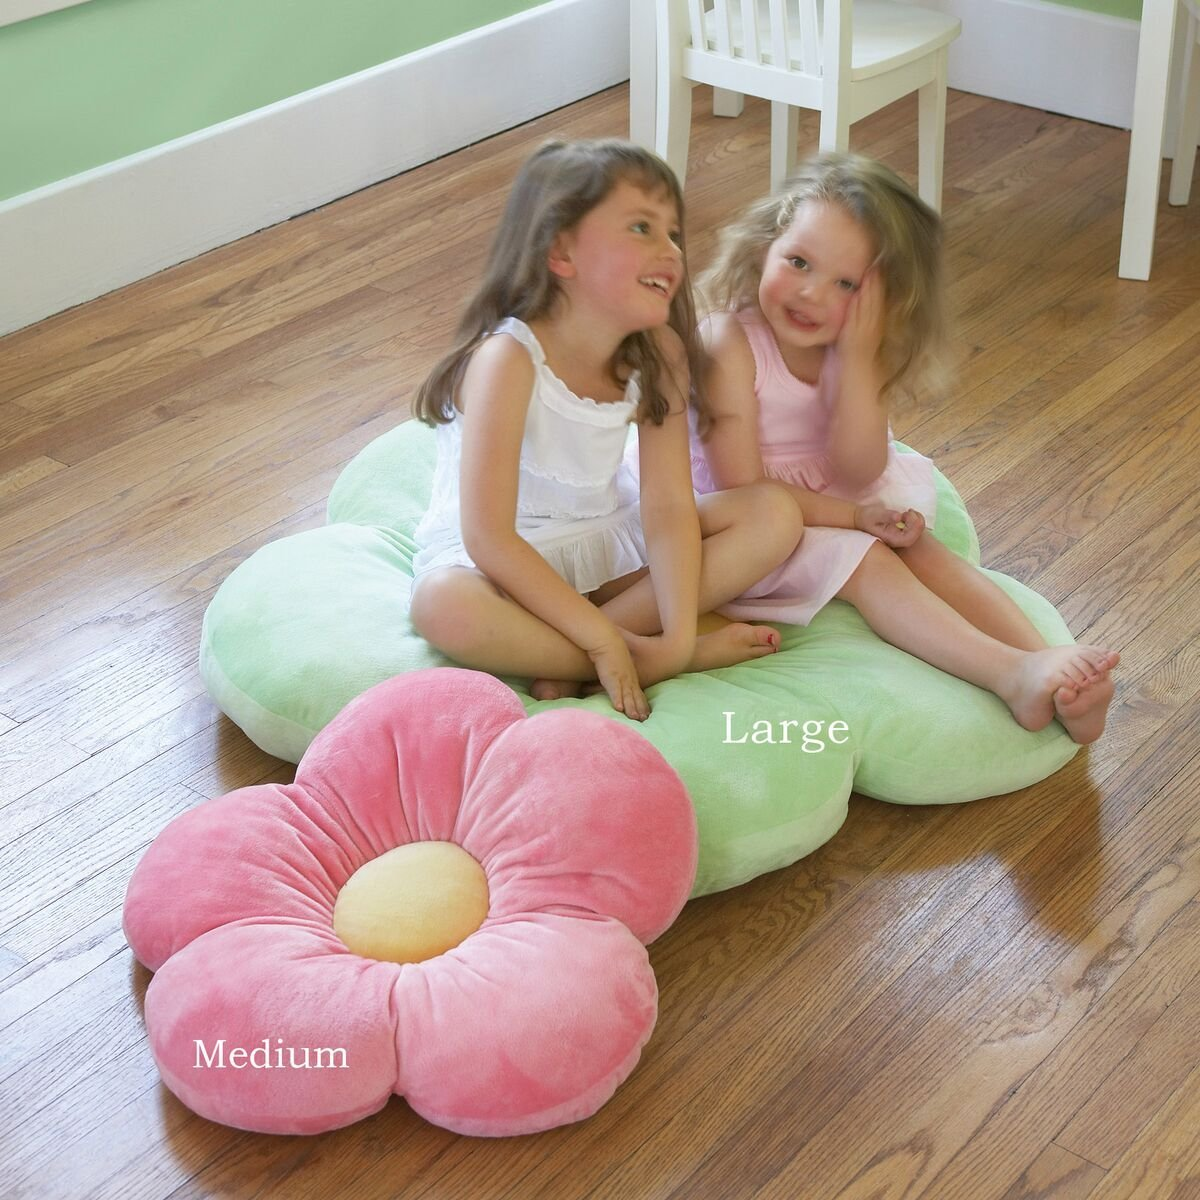 Soft Plush Reading Pillow Seating Cushion for Kids 1pcs,Blue Bed Room,Watching TV TONGHANG Girls Flower Floor Pillow Girls /& Boys Seating Pad for Reading Nook